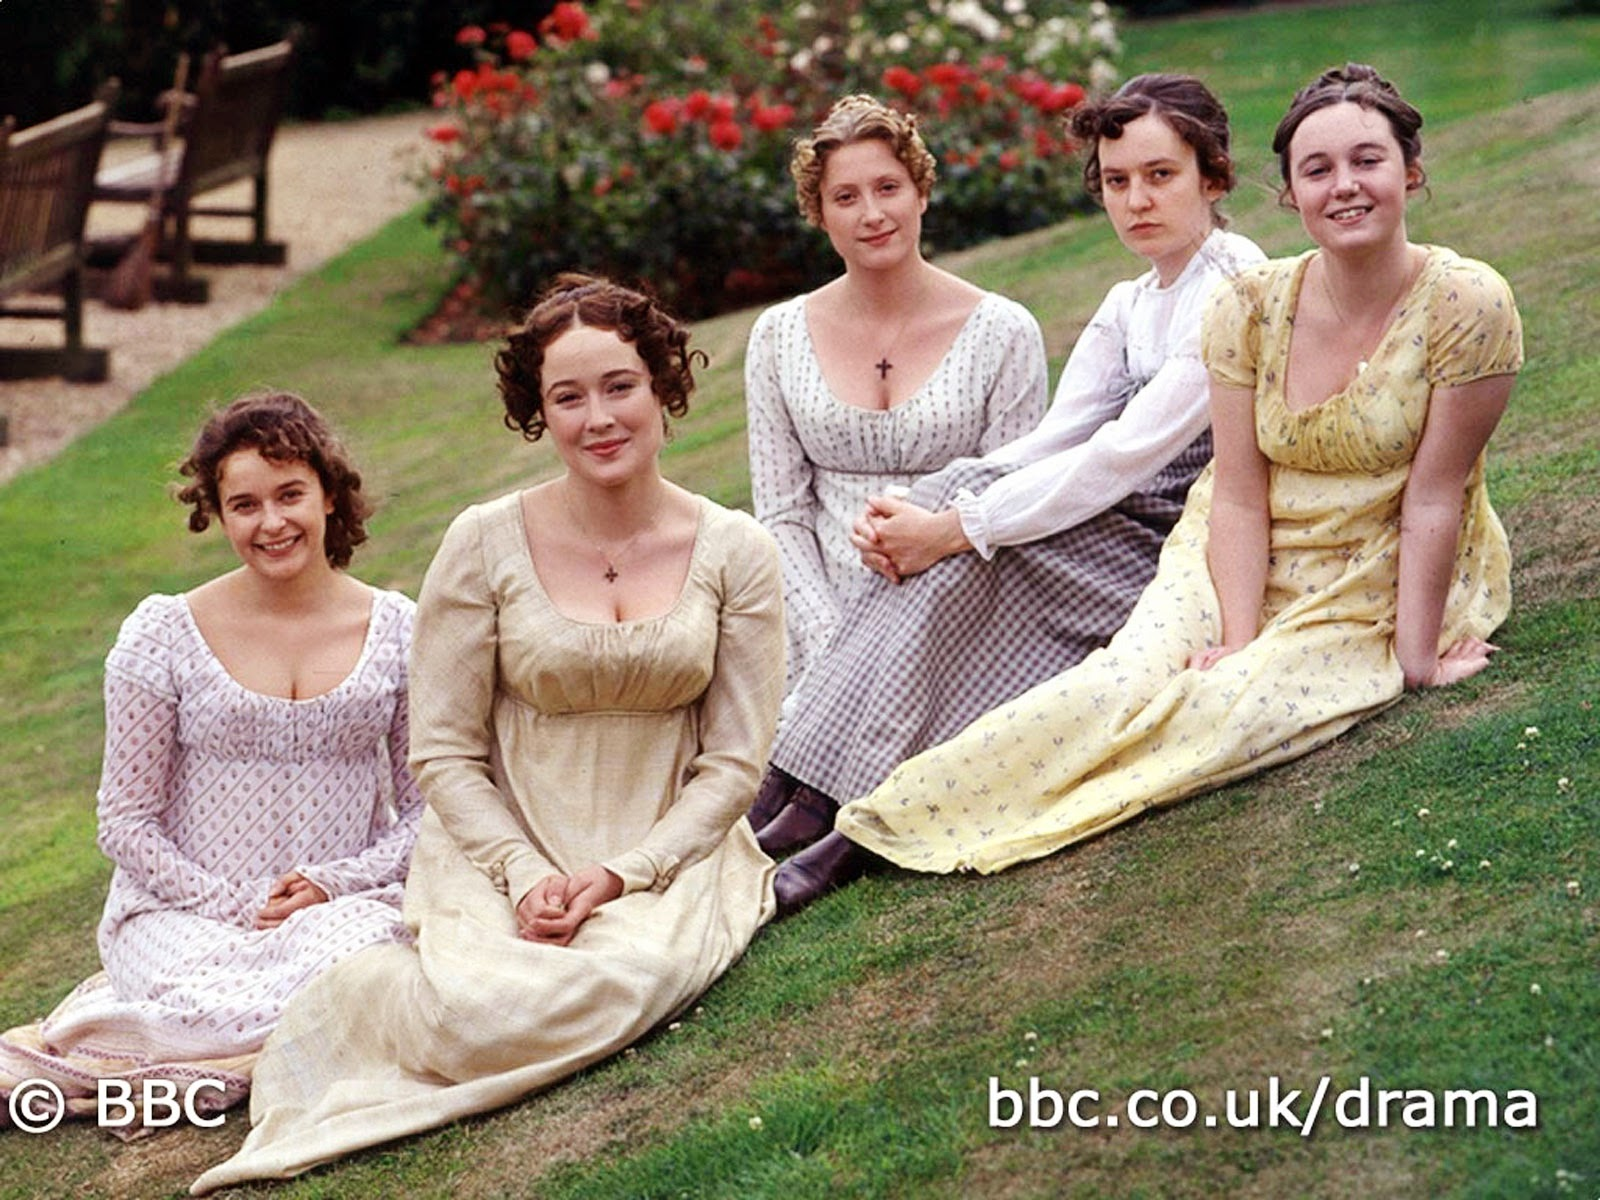 pride prejudice blog celebrating years of pride and pride prejudice 2005 blog celebrating 20 years of pride and prejudice 1995 tv miniseries